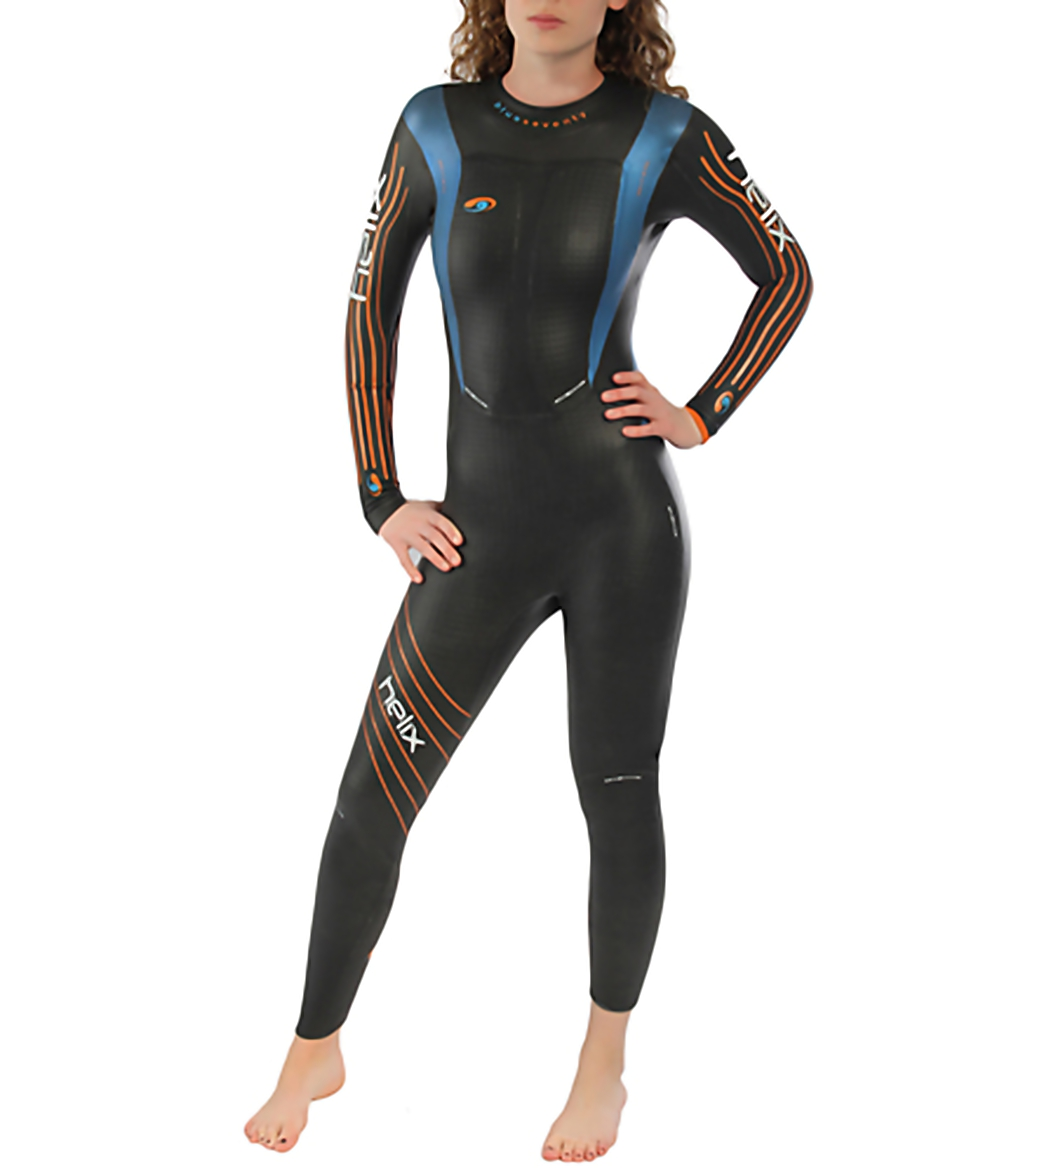 42efa89c879d Blueseventy Women's Helix Wetsuit at SwimOutlet.com - Free Shipping